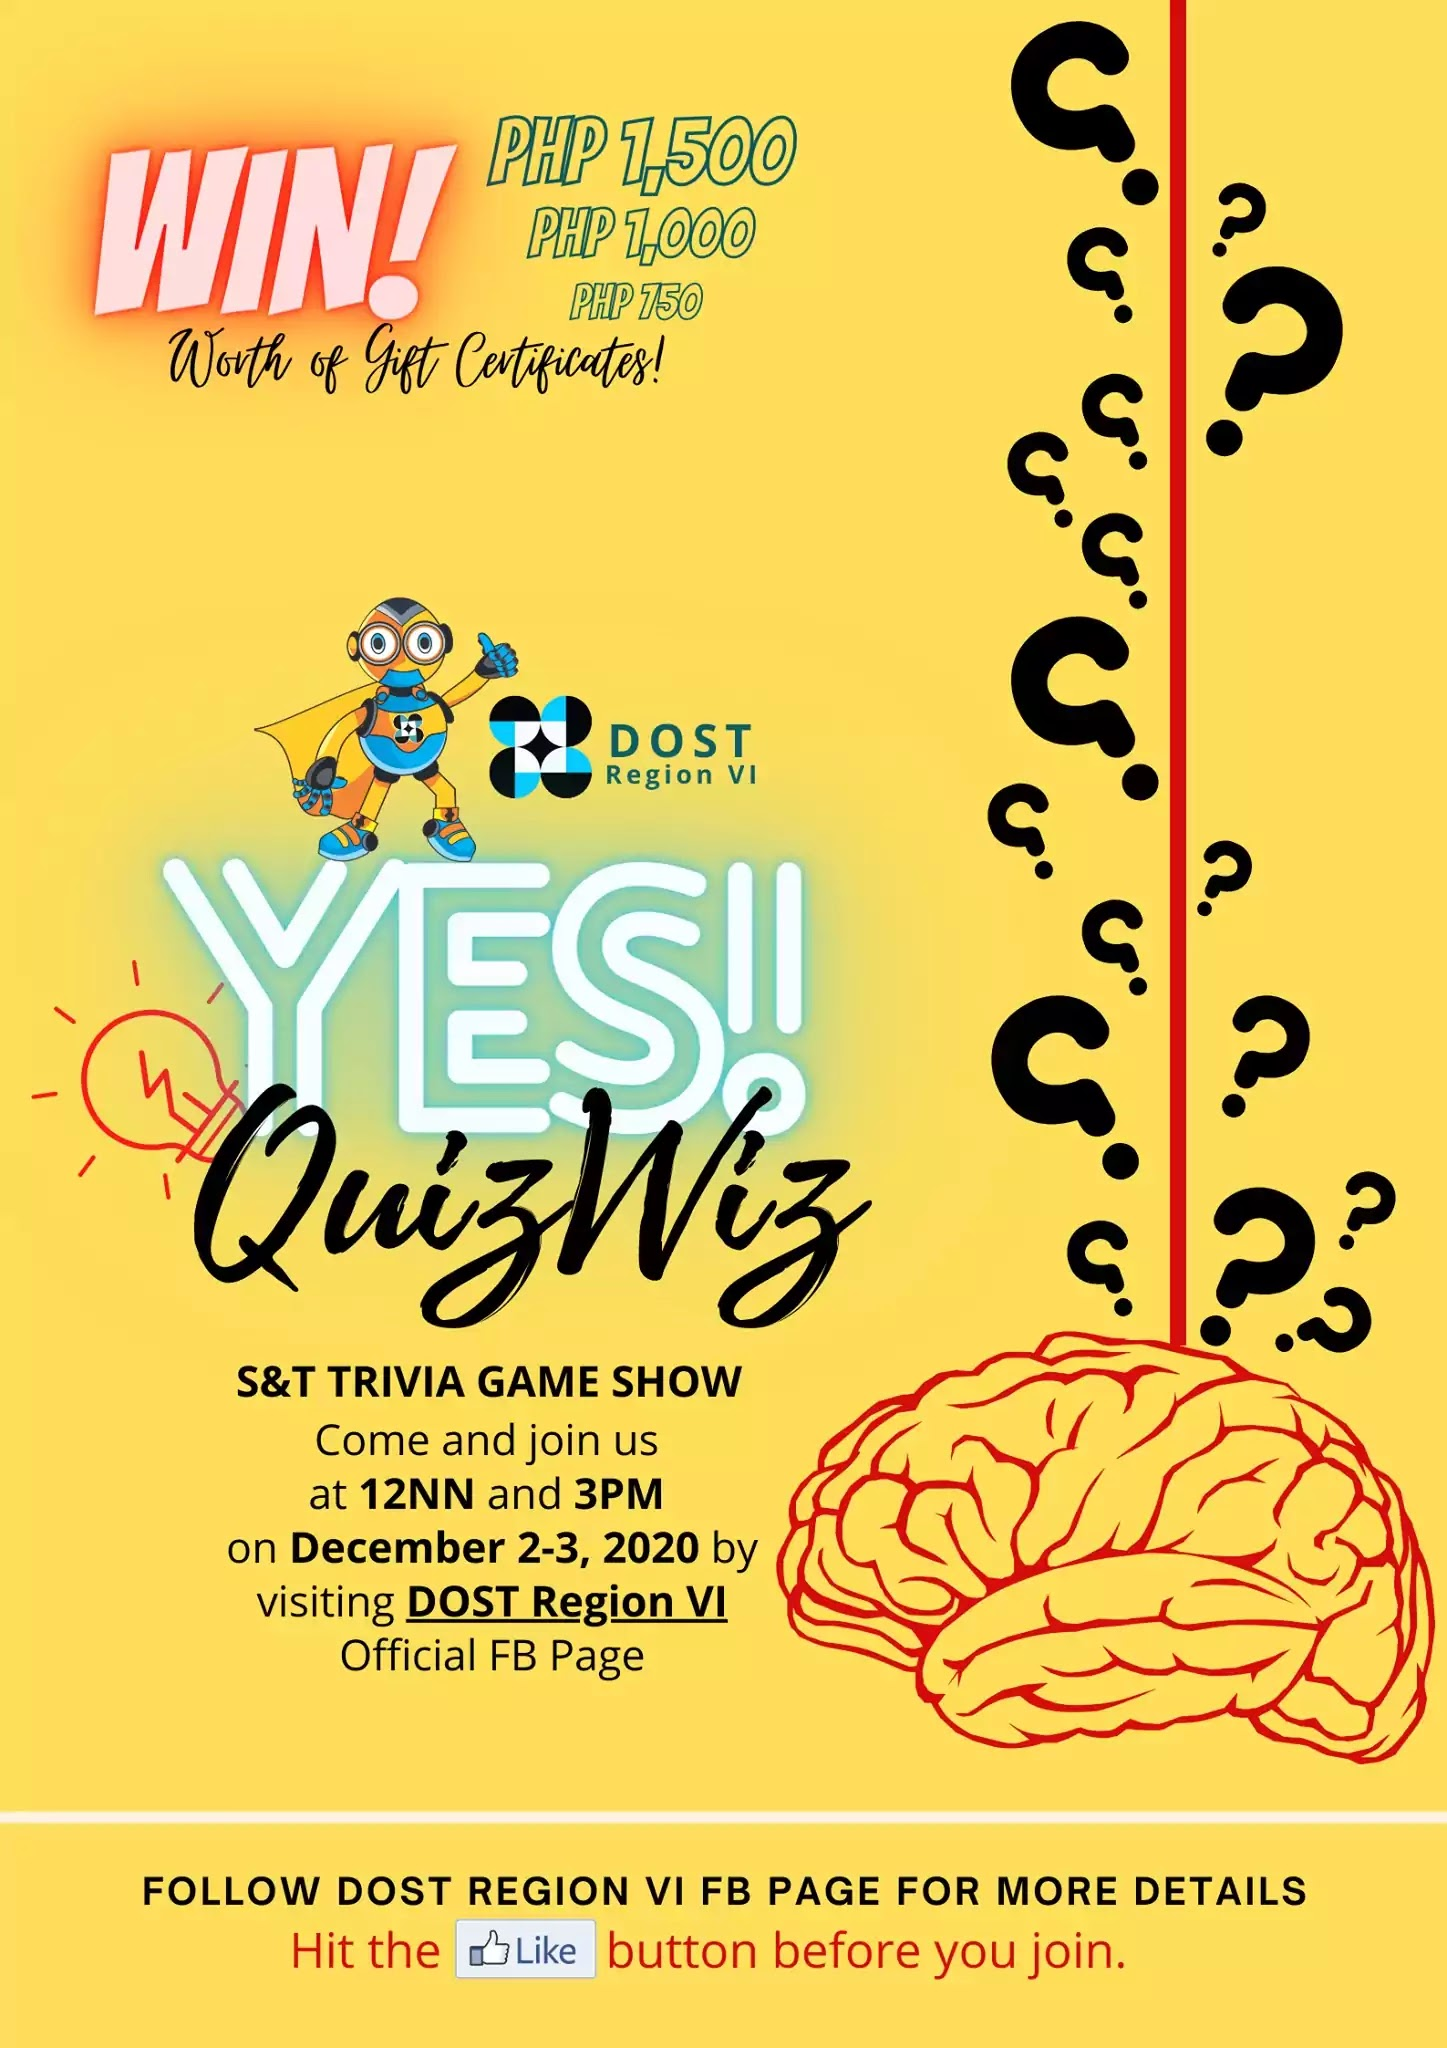 YES! Quiz Wiz S&T Trivia Game Show